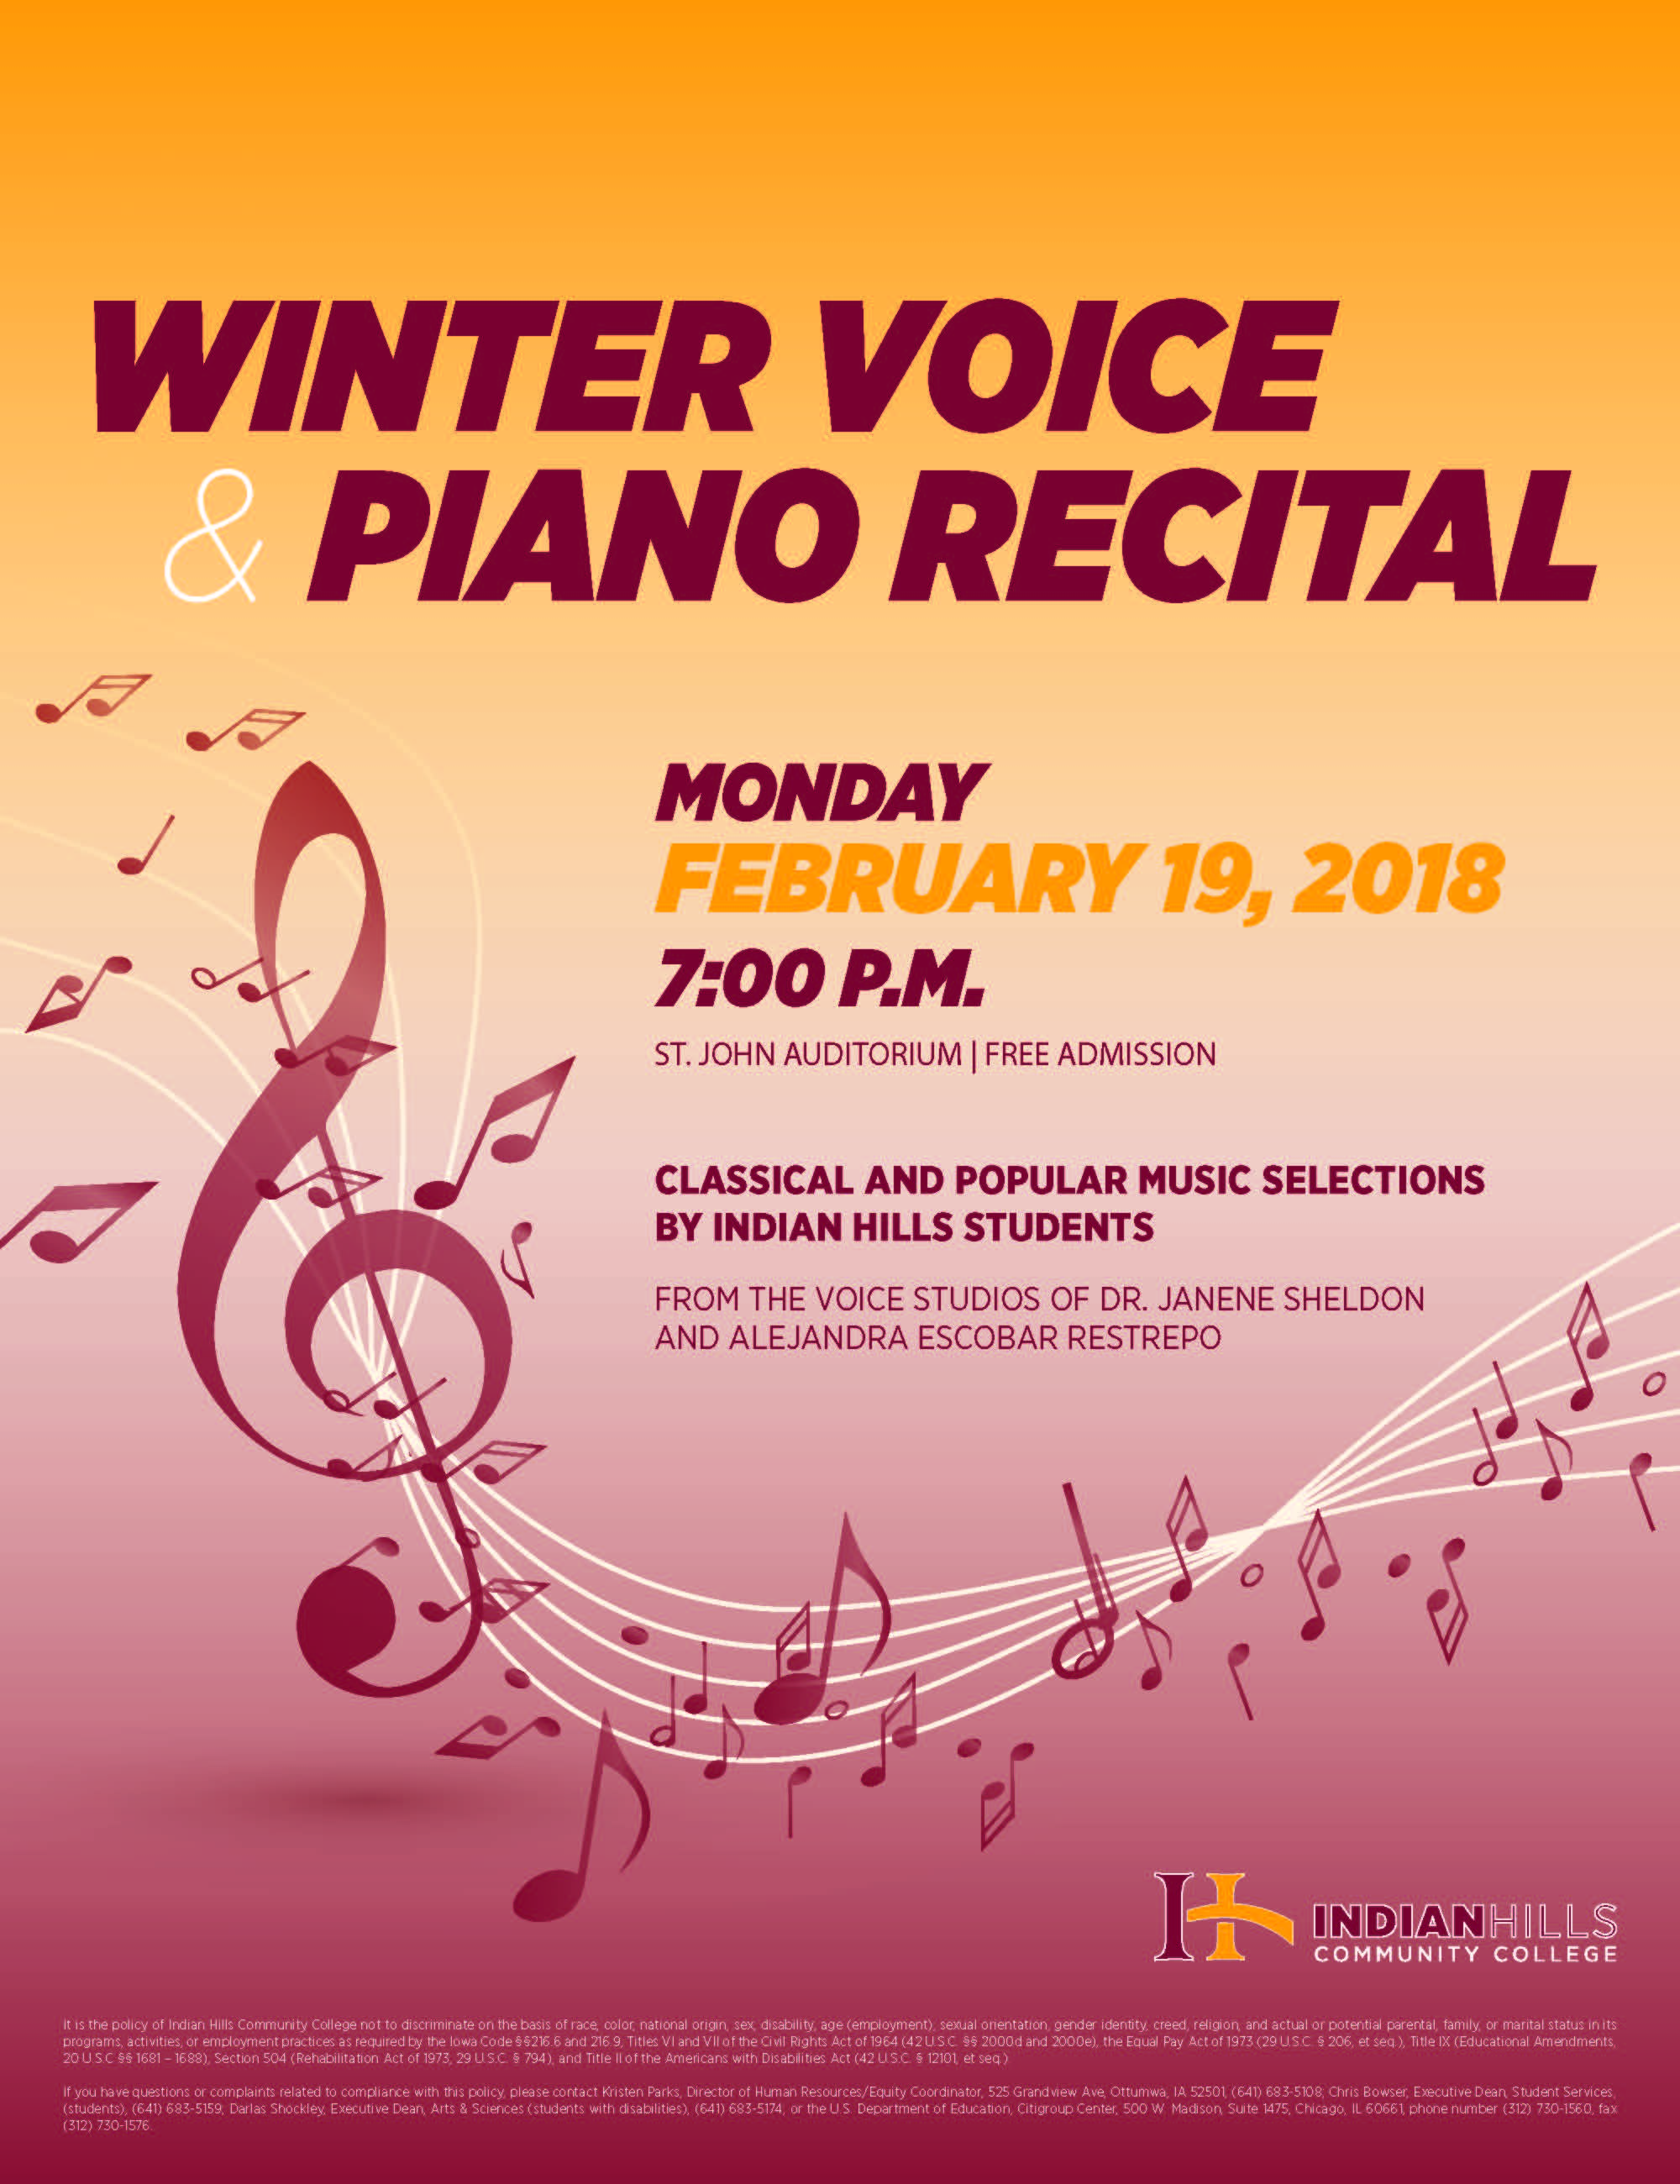 Winter Voice and Piano Recital